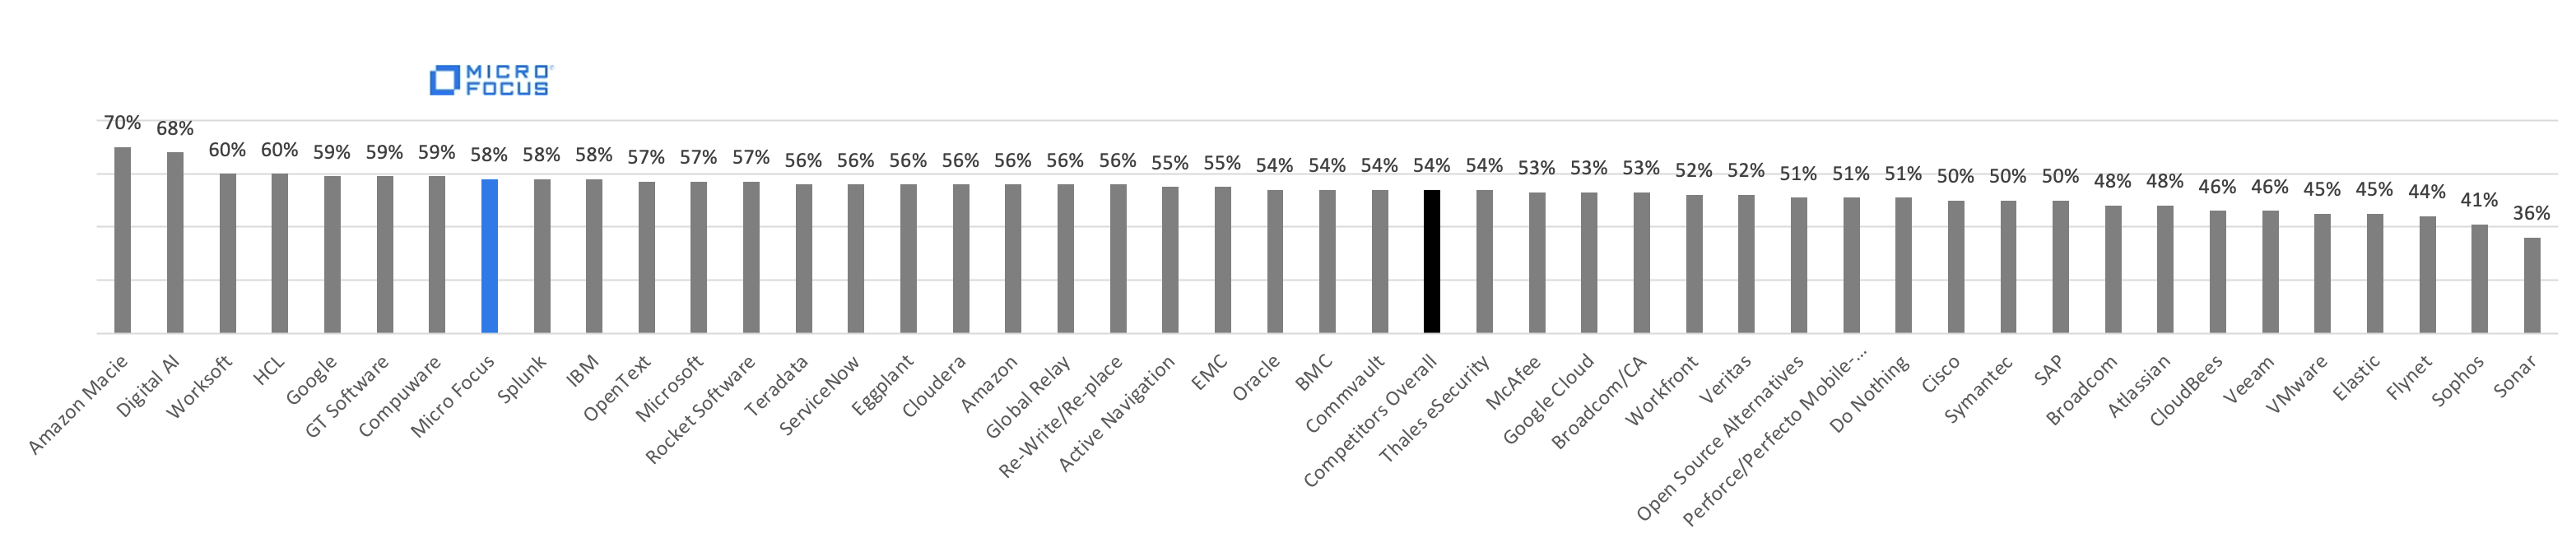 Ranking analysis for customers across the whole software landscape